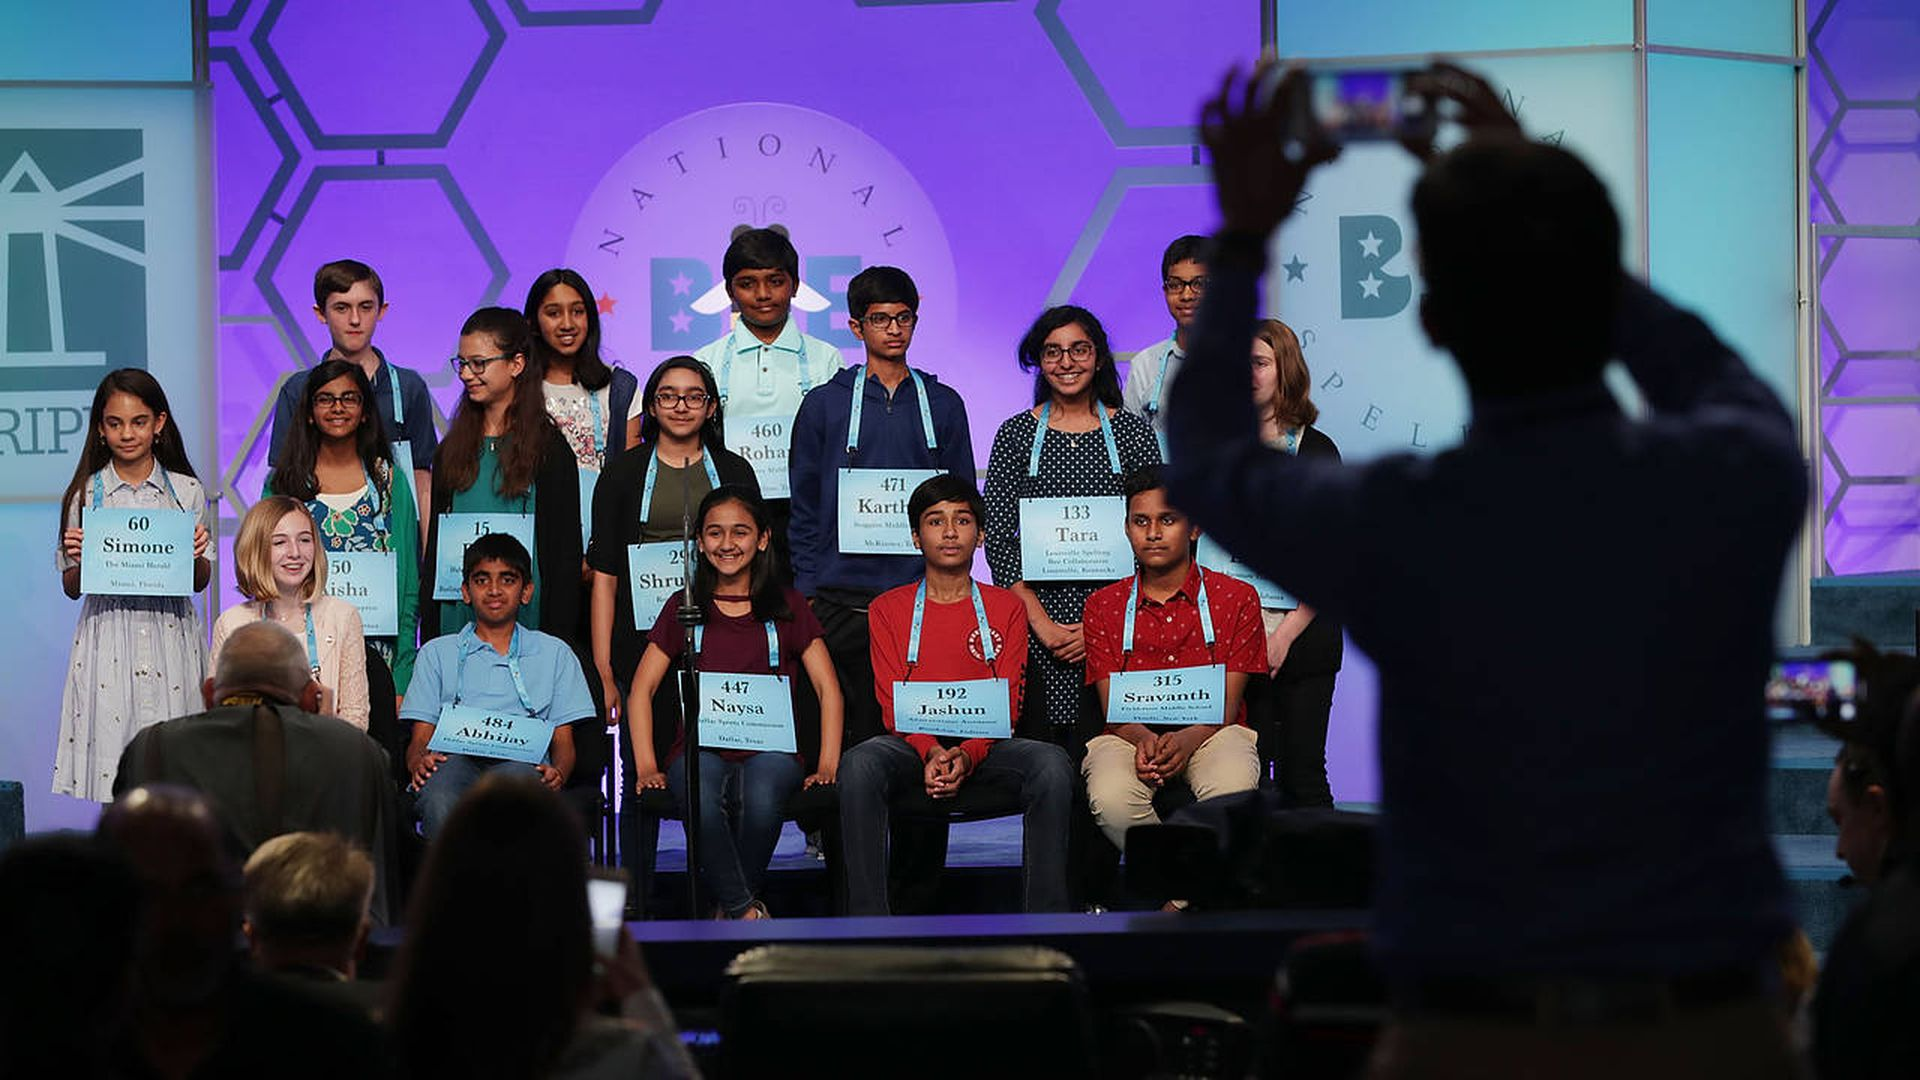 National Spelling Bee introduces pay-to-play option to qualify